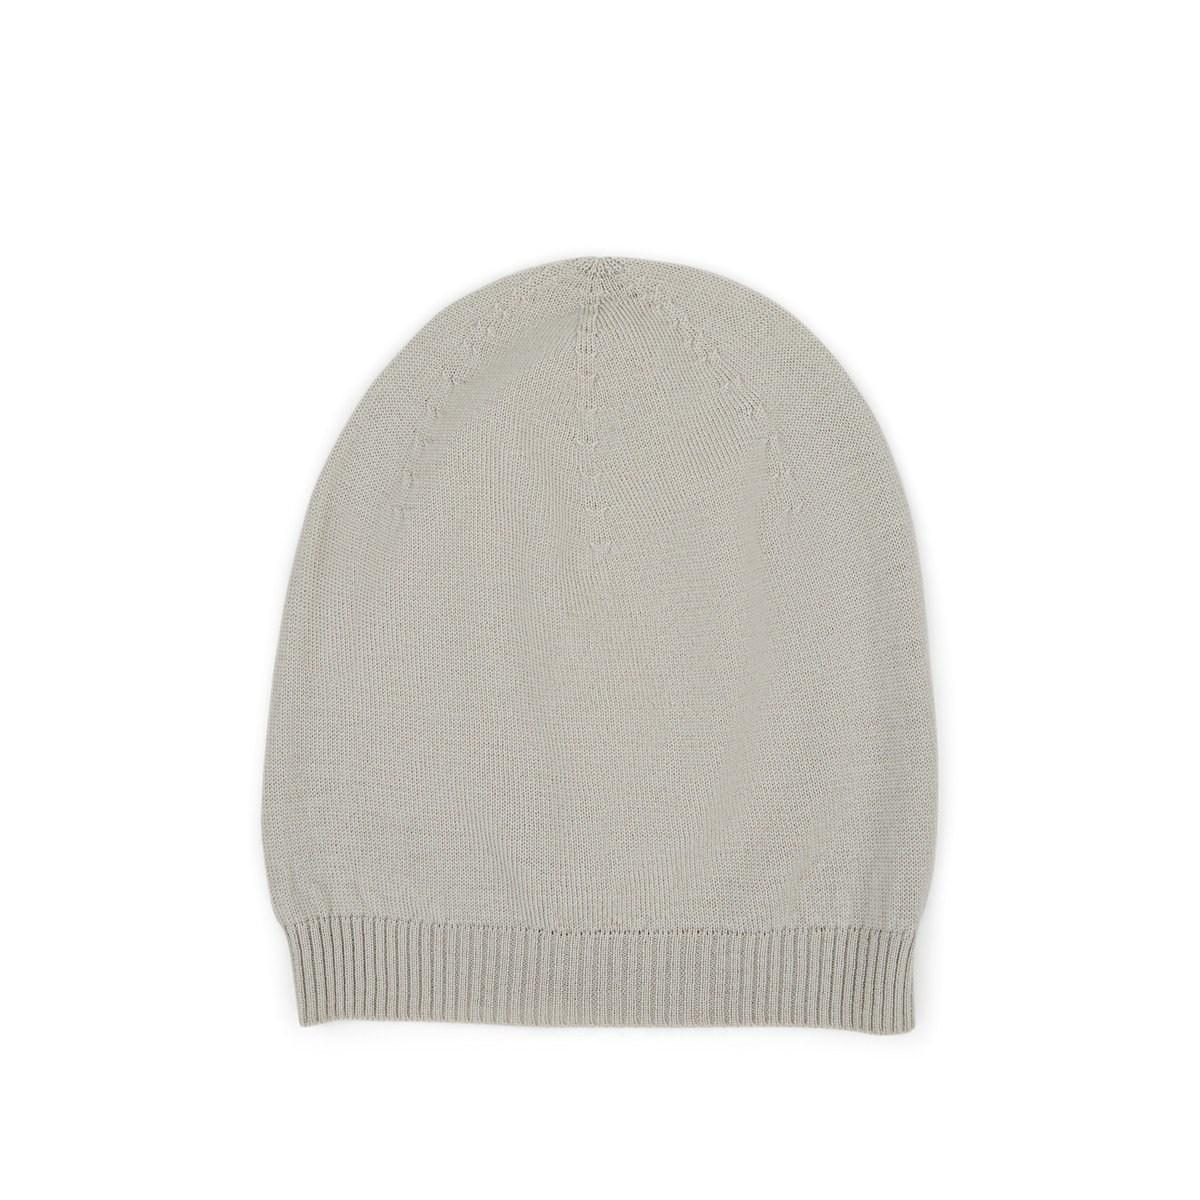 Lyst - Rick Owens Wool Beanie in Gray for Men 4048d10f51cf